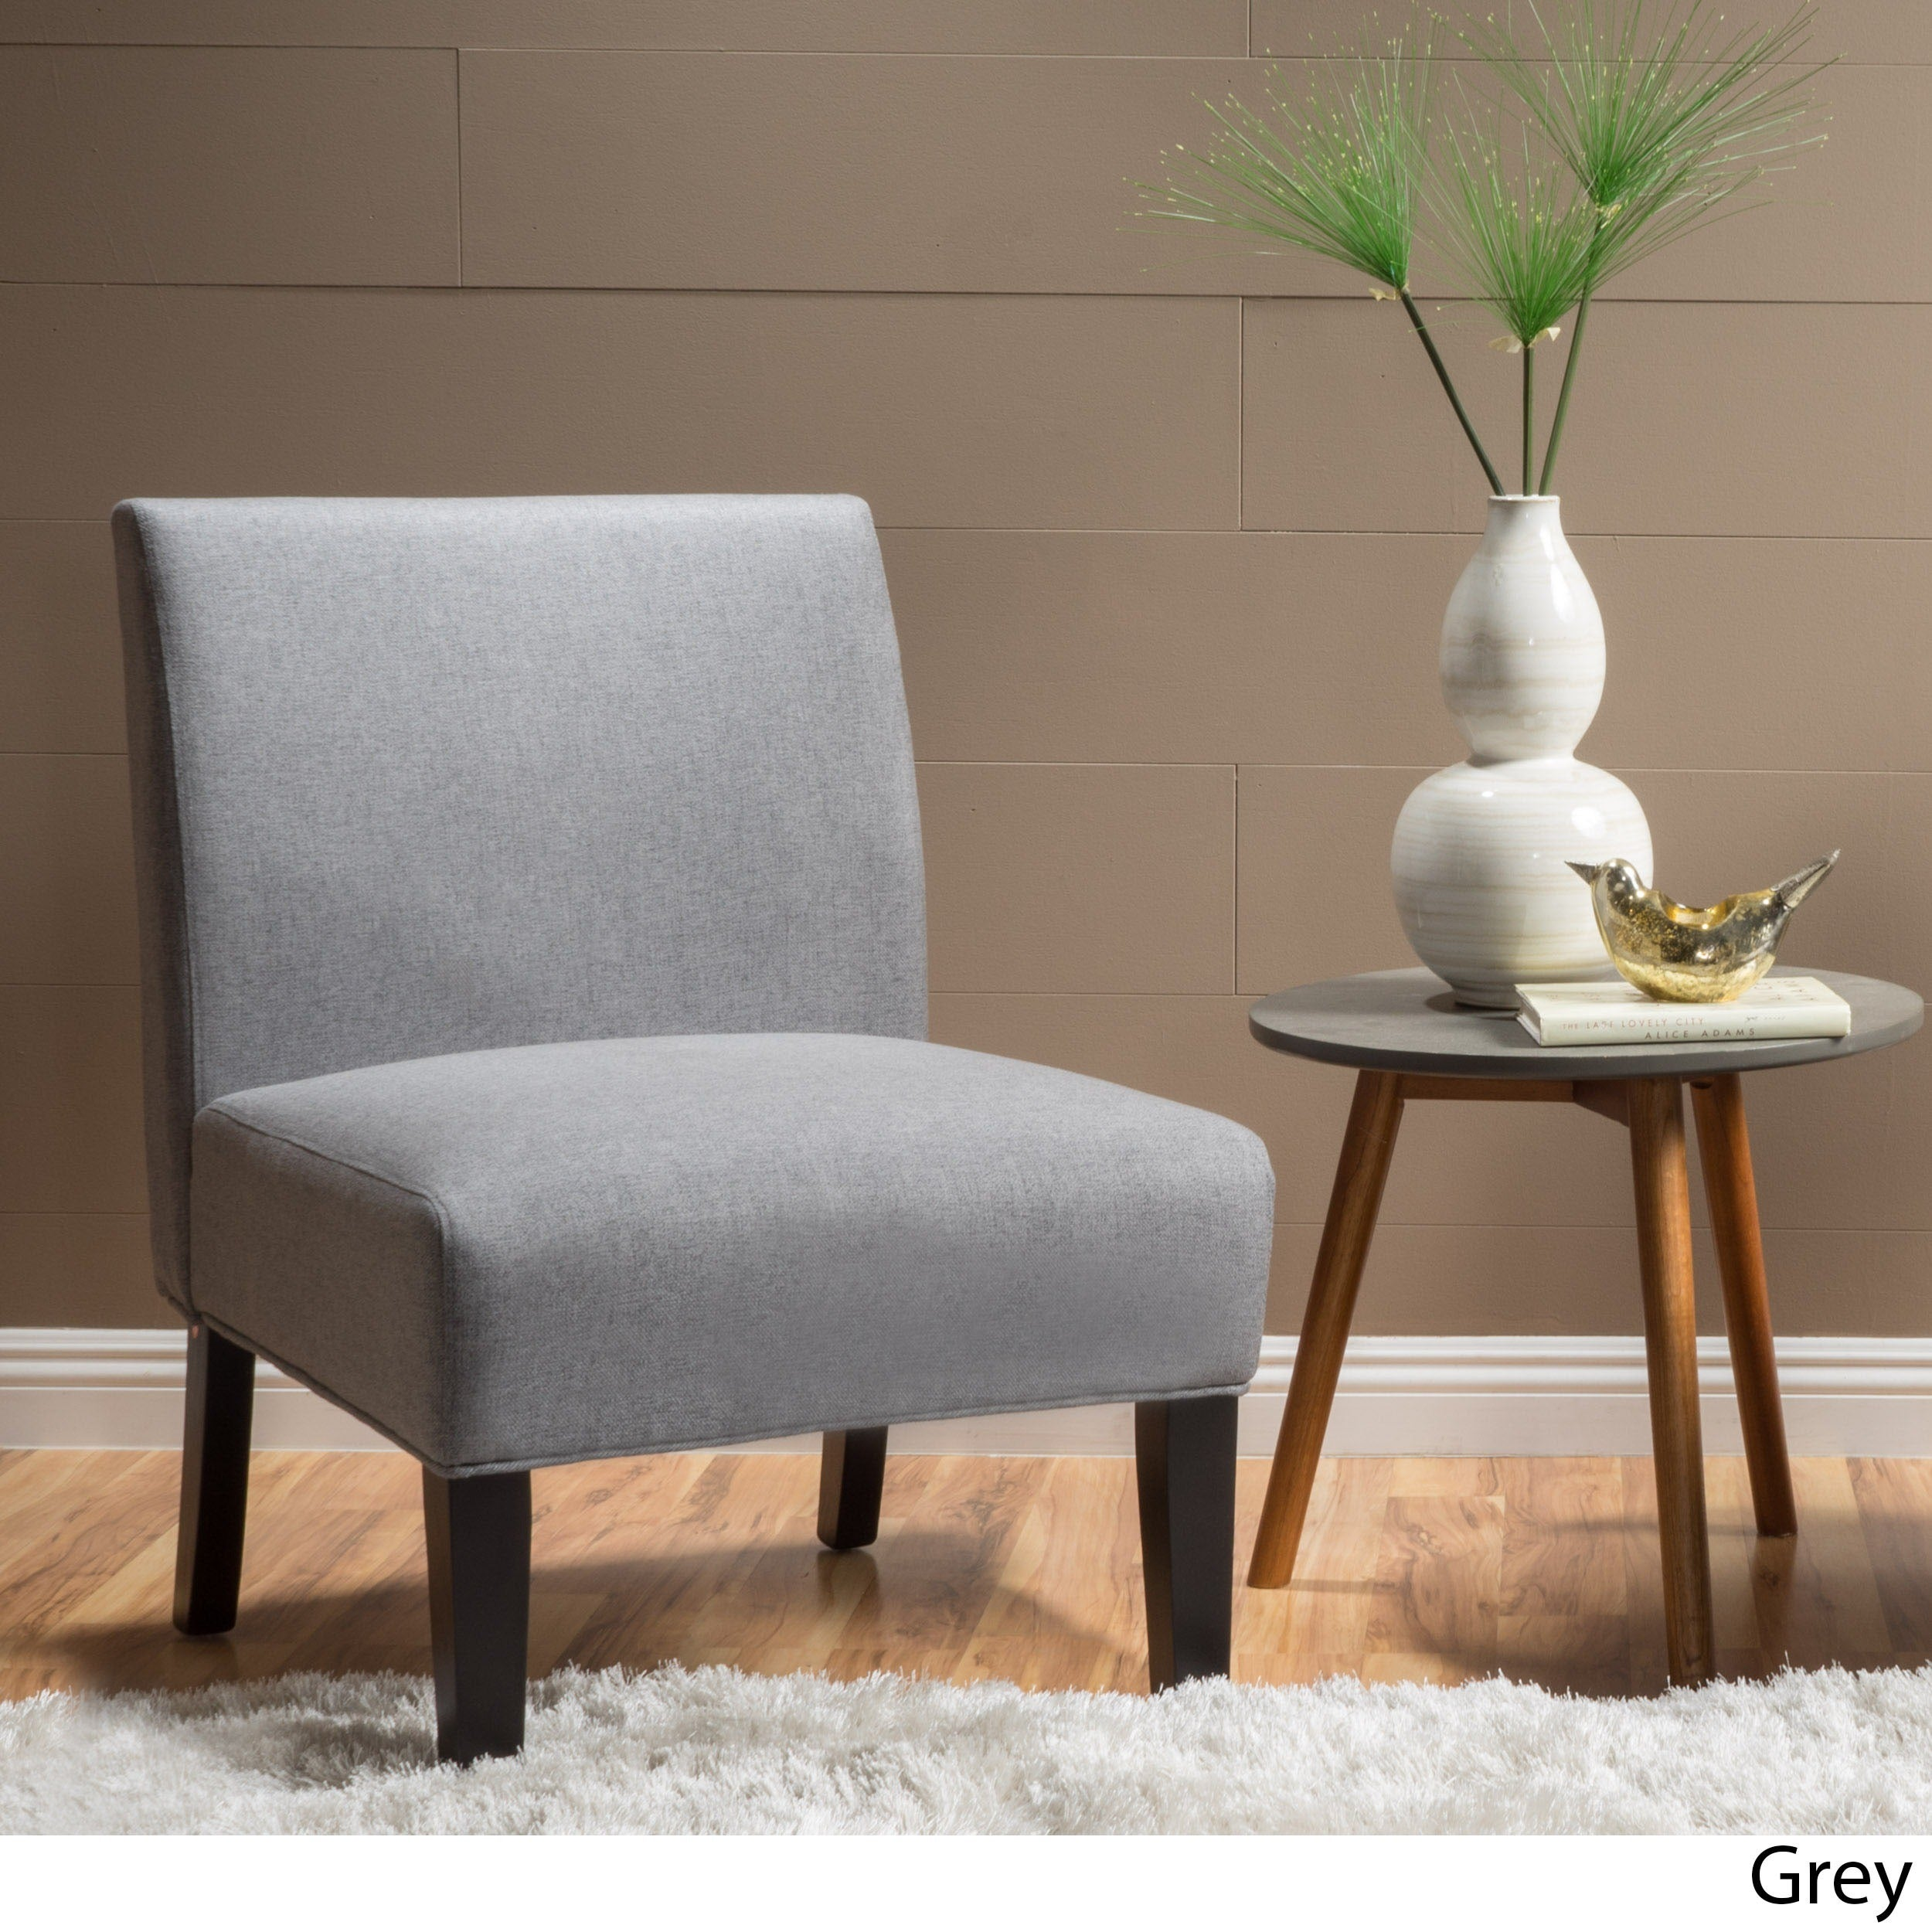 Clay Alder Home Platte Blue Fabric Accent Chair (2 Options Available)